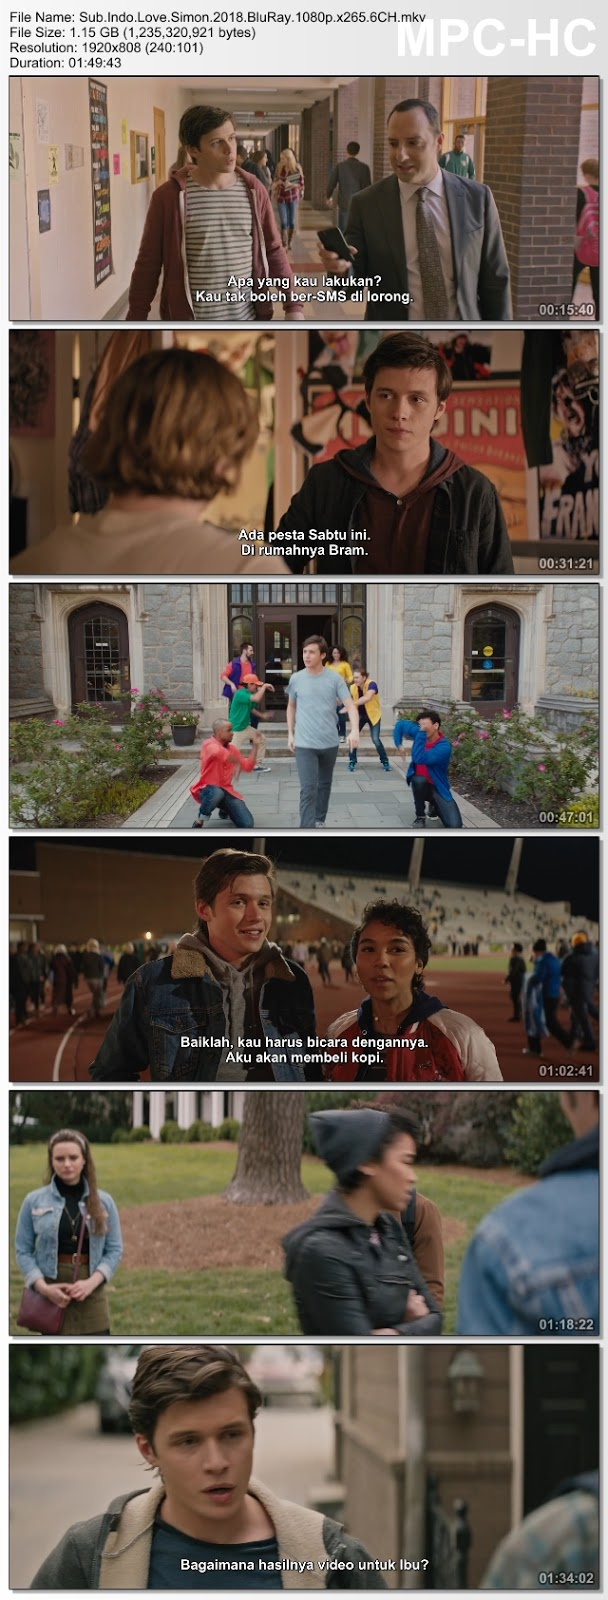 Screenshots Download Film Gratis Love Simon (2018) BluRay 480p MP4 Subtitle Bahasa Indonesia 3GP